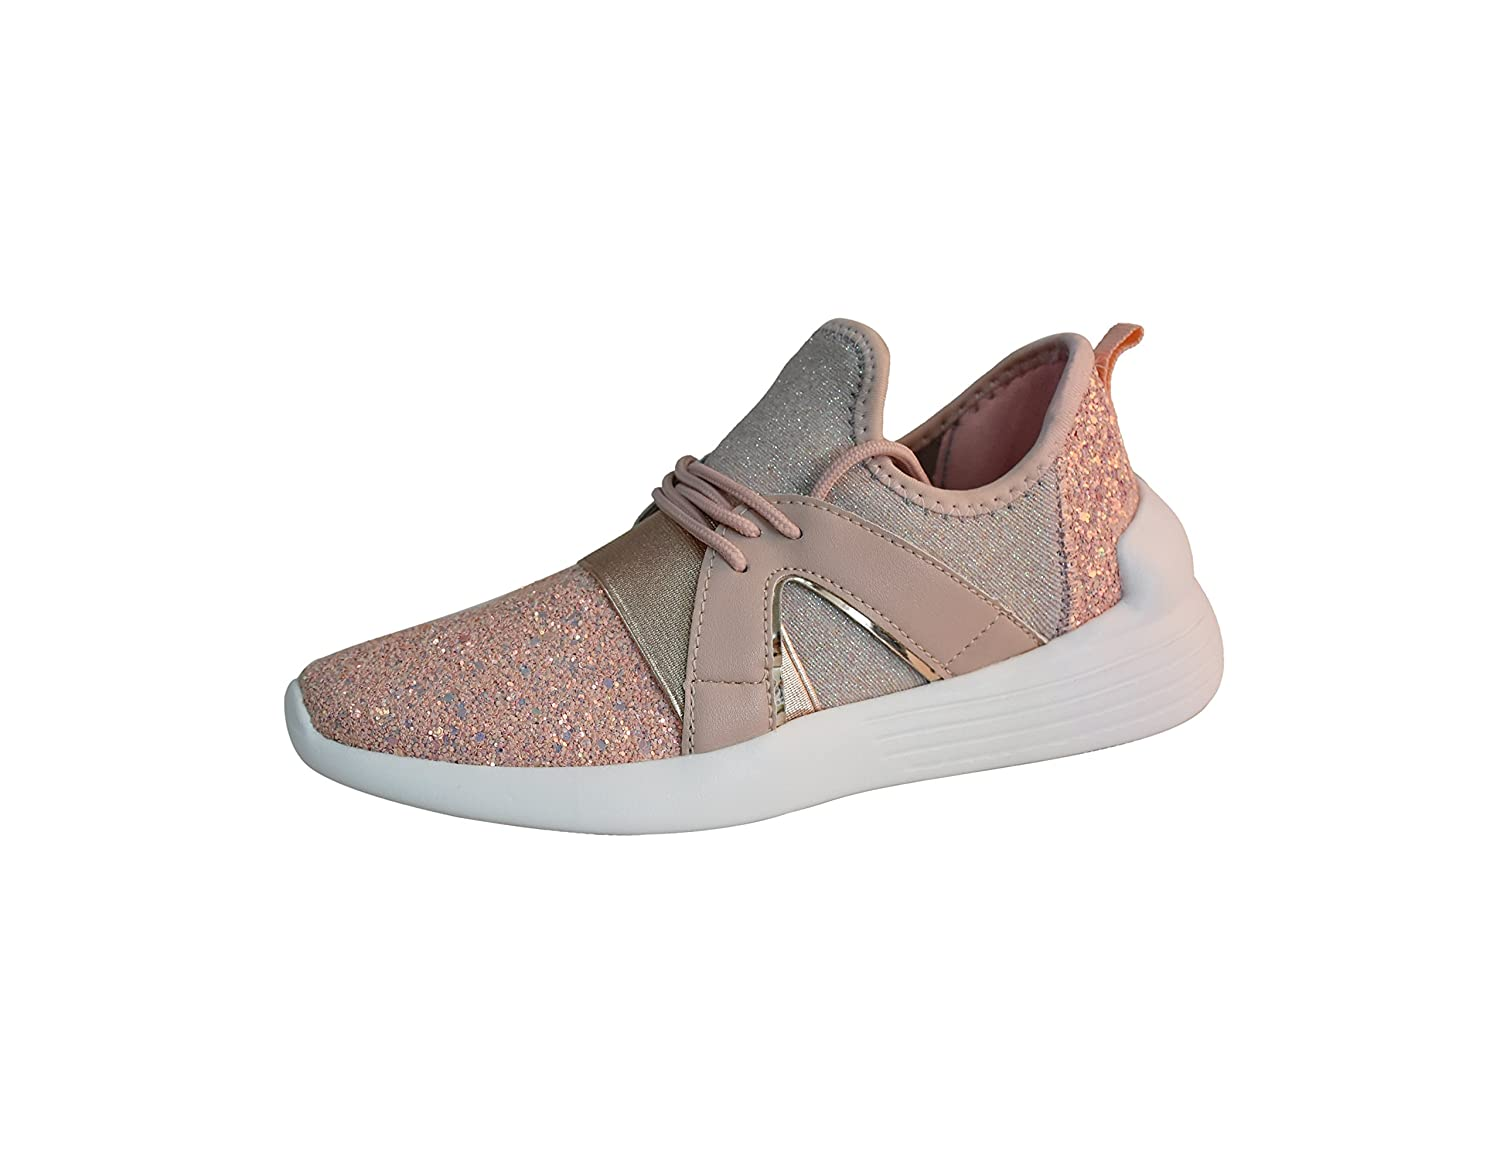 ROXY ROSE Women Glitter Sneakers Casual Quilted Lace up Sparkly Sports Running Shoes B07BRK9733 9 M US|Dusty Rose